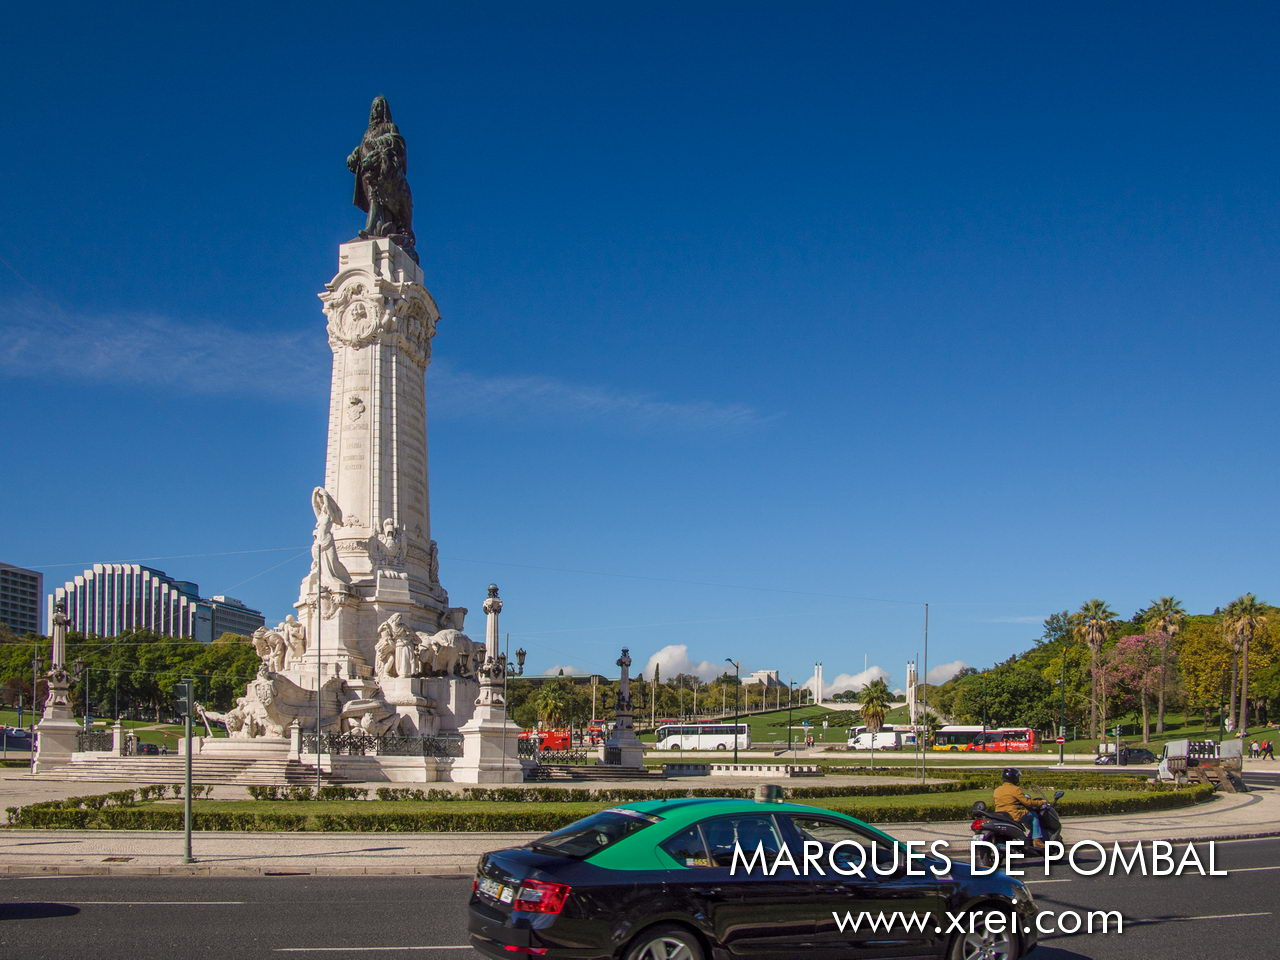 Praça Marquês de Pombal is the largest roundabout in the city of Lisbon, located between Avenida da Liberdade and Parque Eduardo Sétimo. In the center of the roundabout there is a square with the statue of Homage to the Marquis of Pombal located on top of a monument 40 meters high.